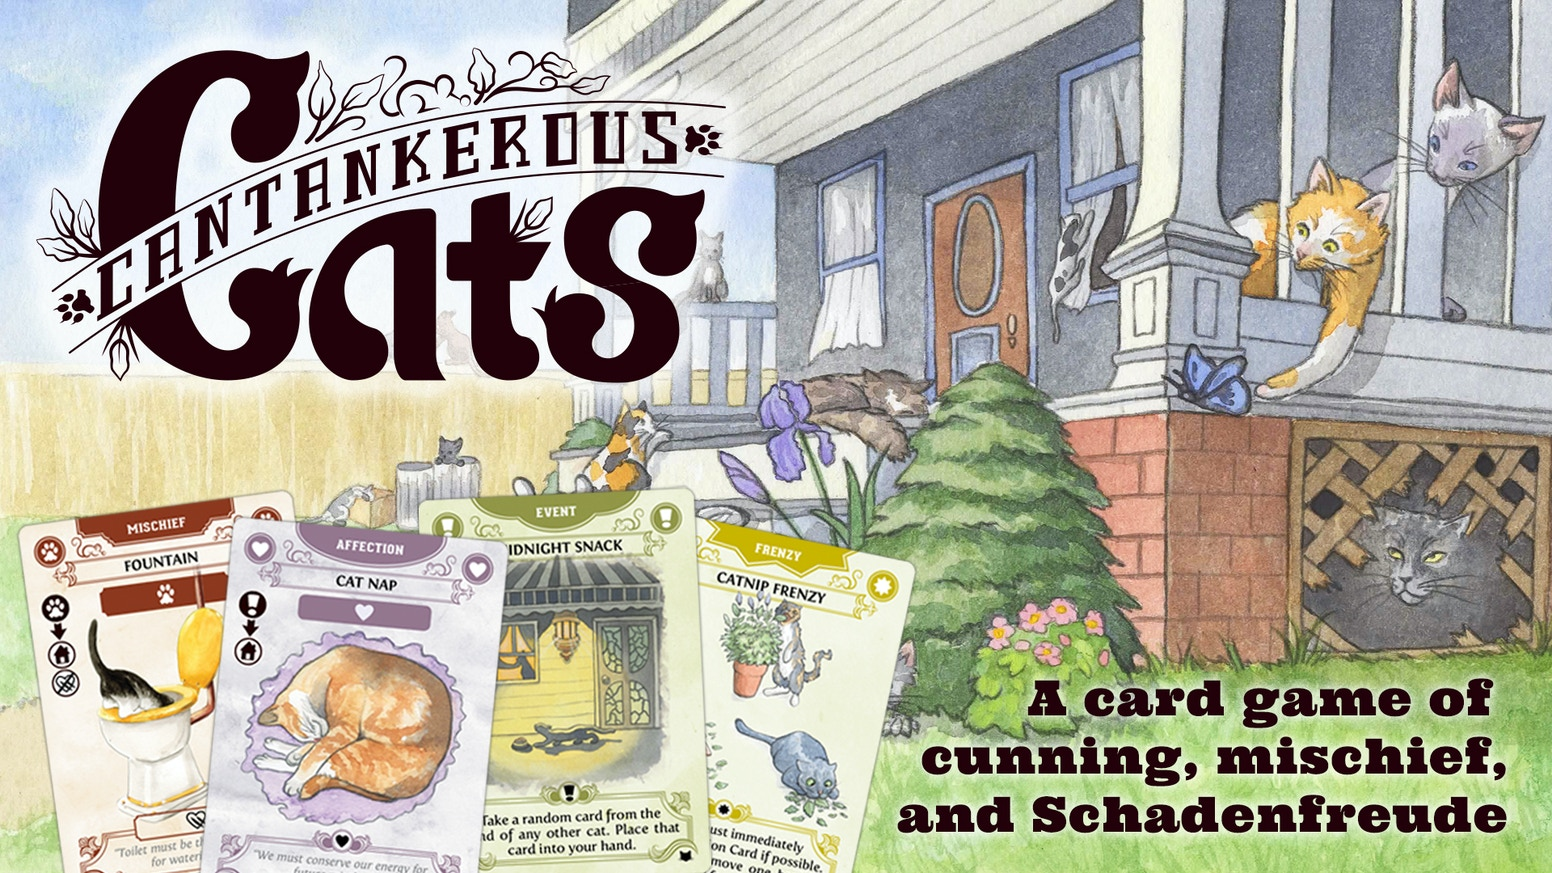 A ferocious feline card game filled with cunning, mischief, and schadenfreude for 2-6 Hoomins!